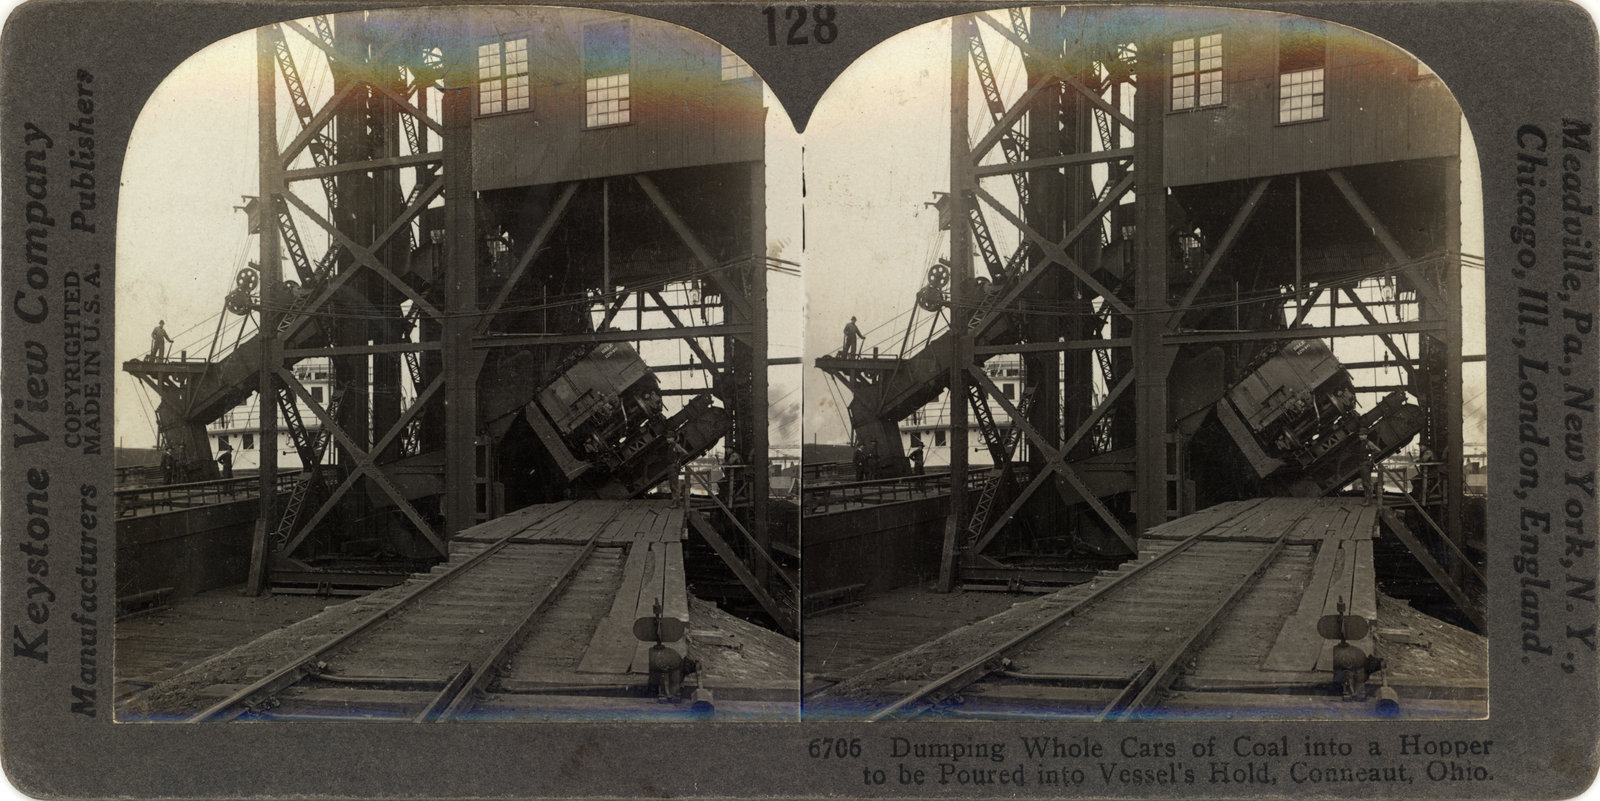 Dumping Whole Cars of Coal into a Hopper to be Poured into Vessel's Hold, Conneaut, Ohio